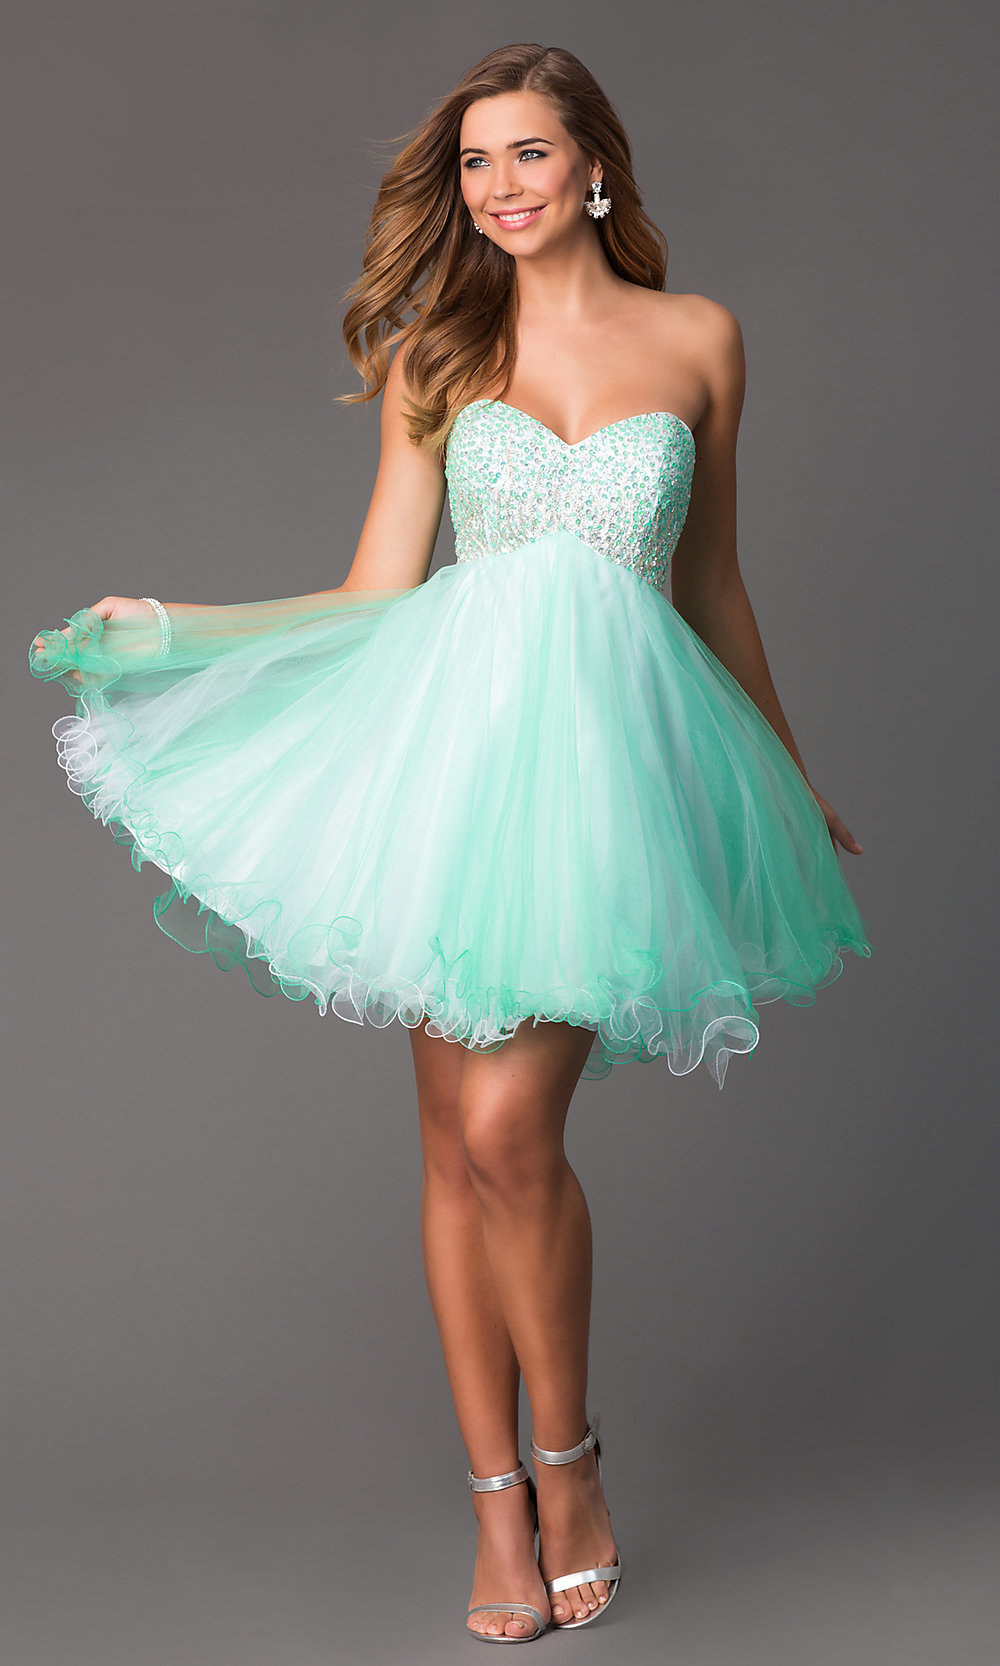 Short Strapless Sequined Prom Dress - PromGirl